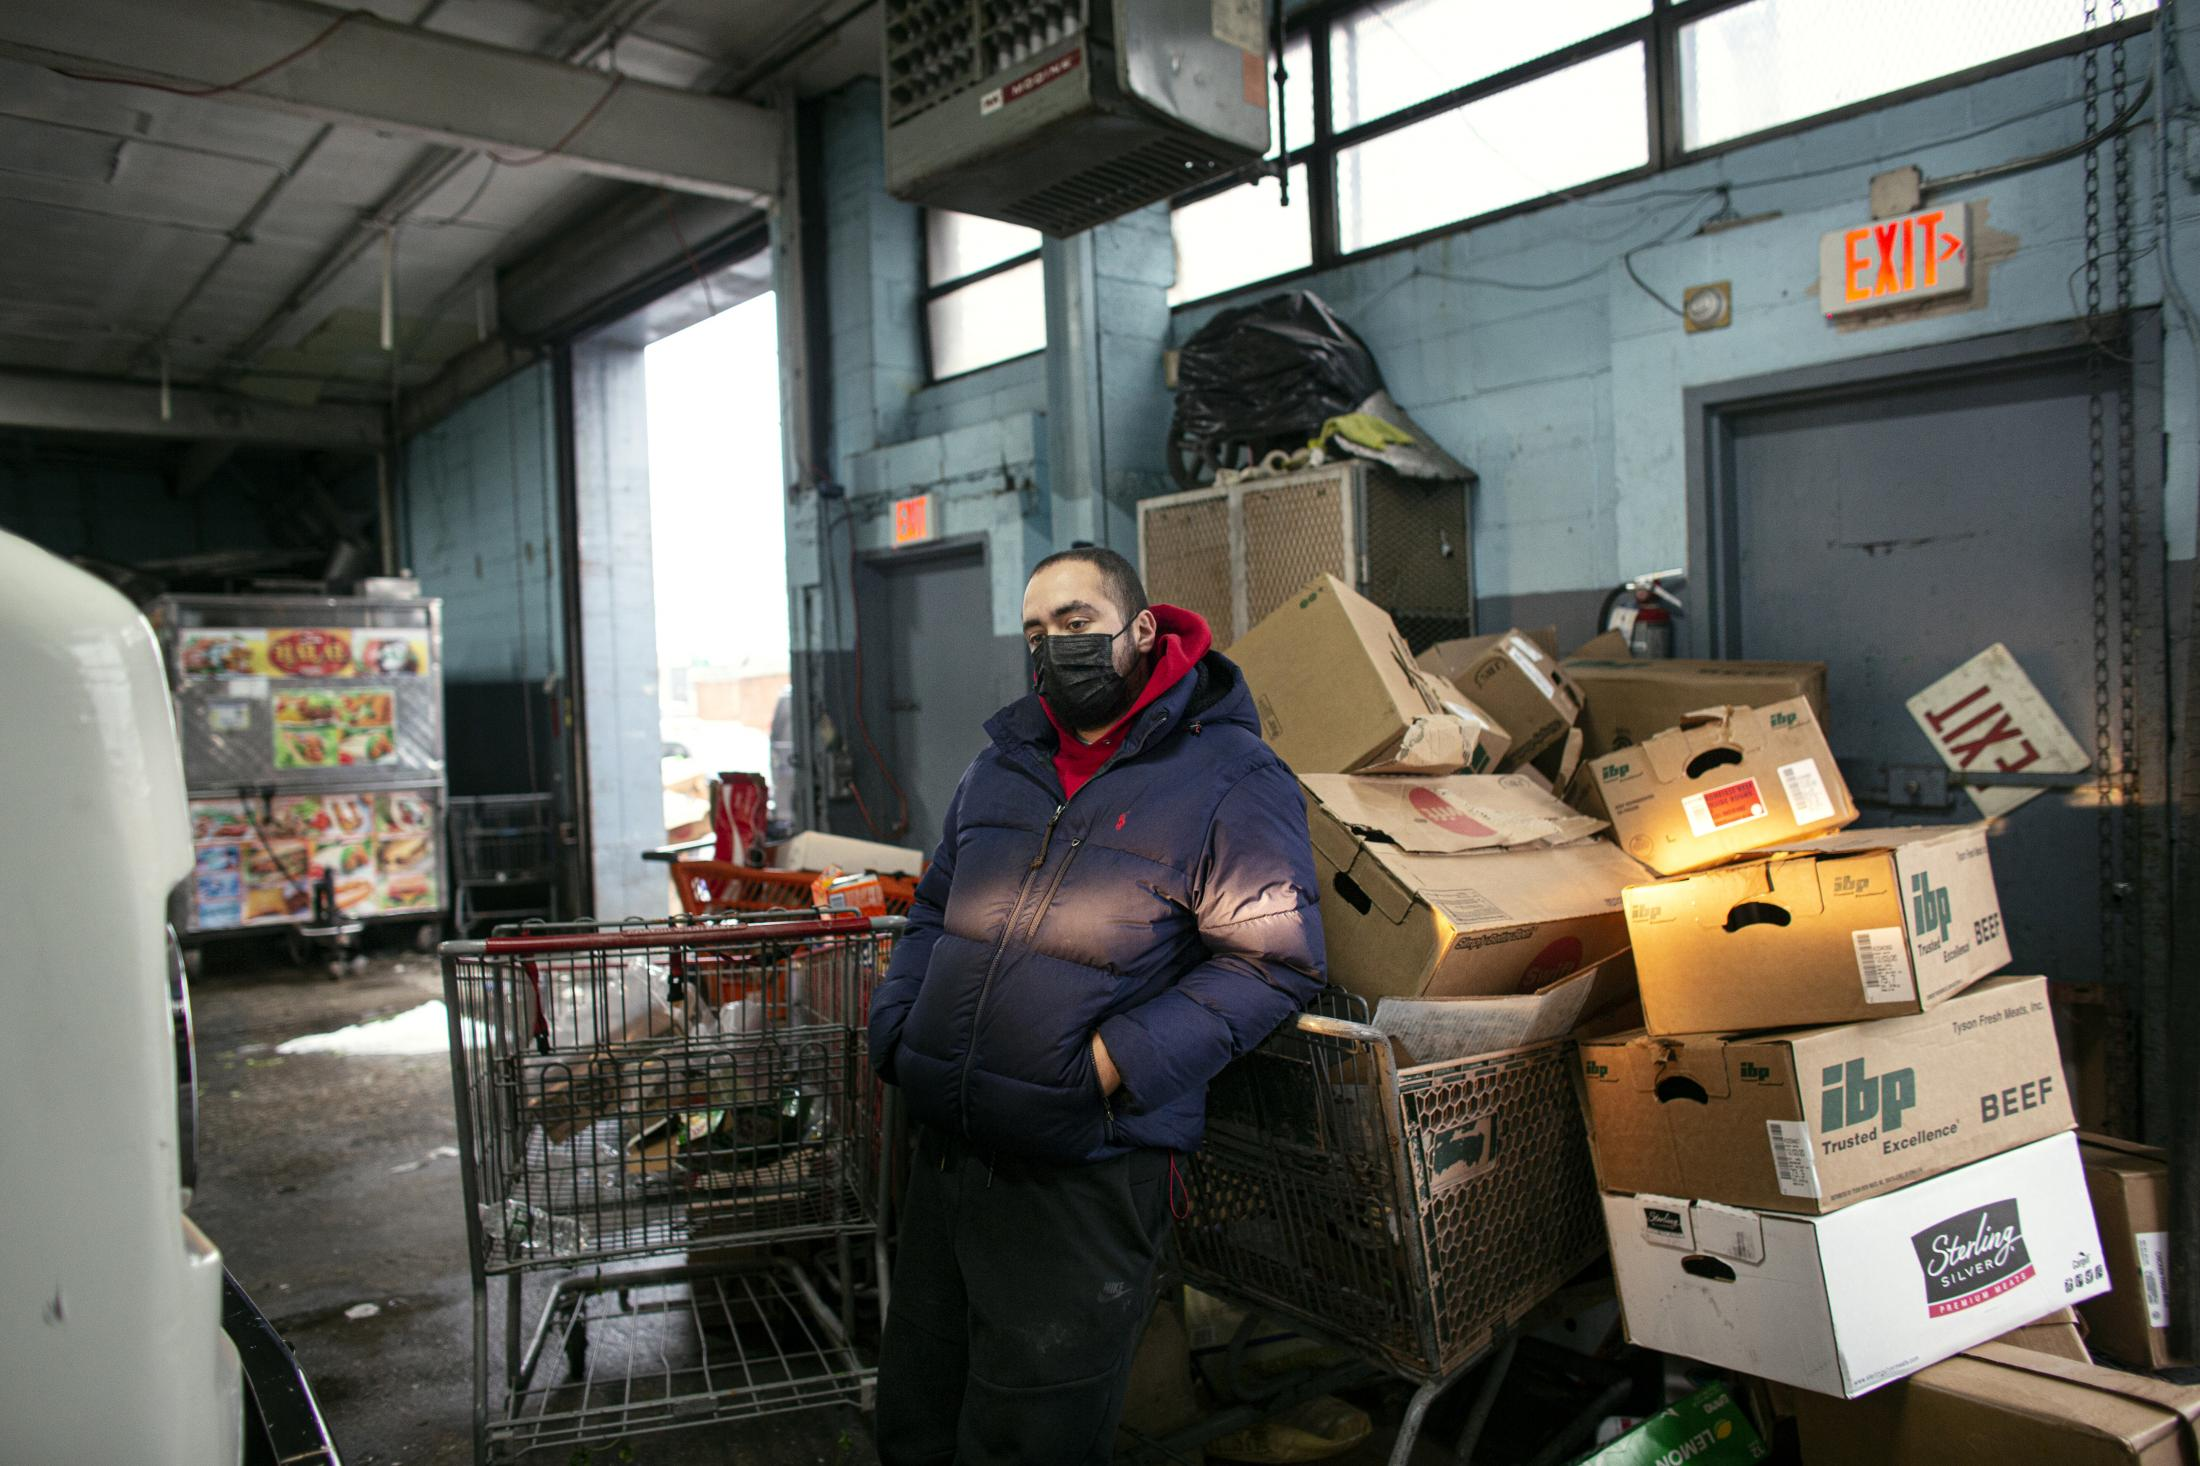 Mahmoud Ibrahim, a second generation Egyptian from Queens, poses for a photo at the commissary on Tuesday, January 26, 2020. Ibrahim and his family are among the street vendors who have been forced to close their business due to difficulty obtaining licenses to sell food on the street.